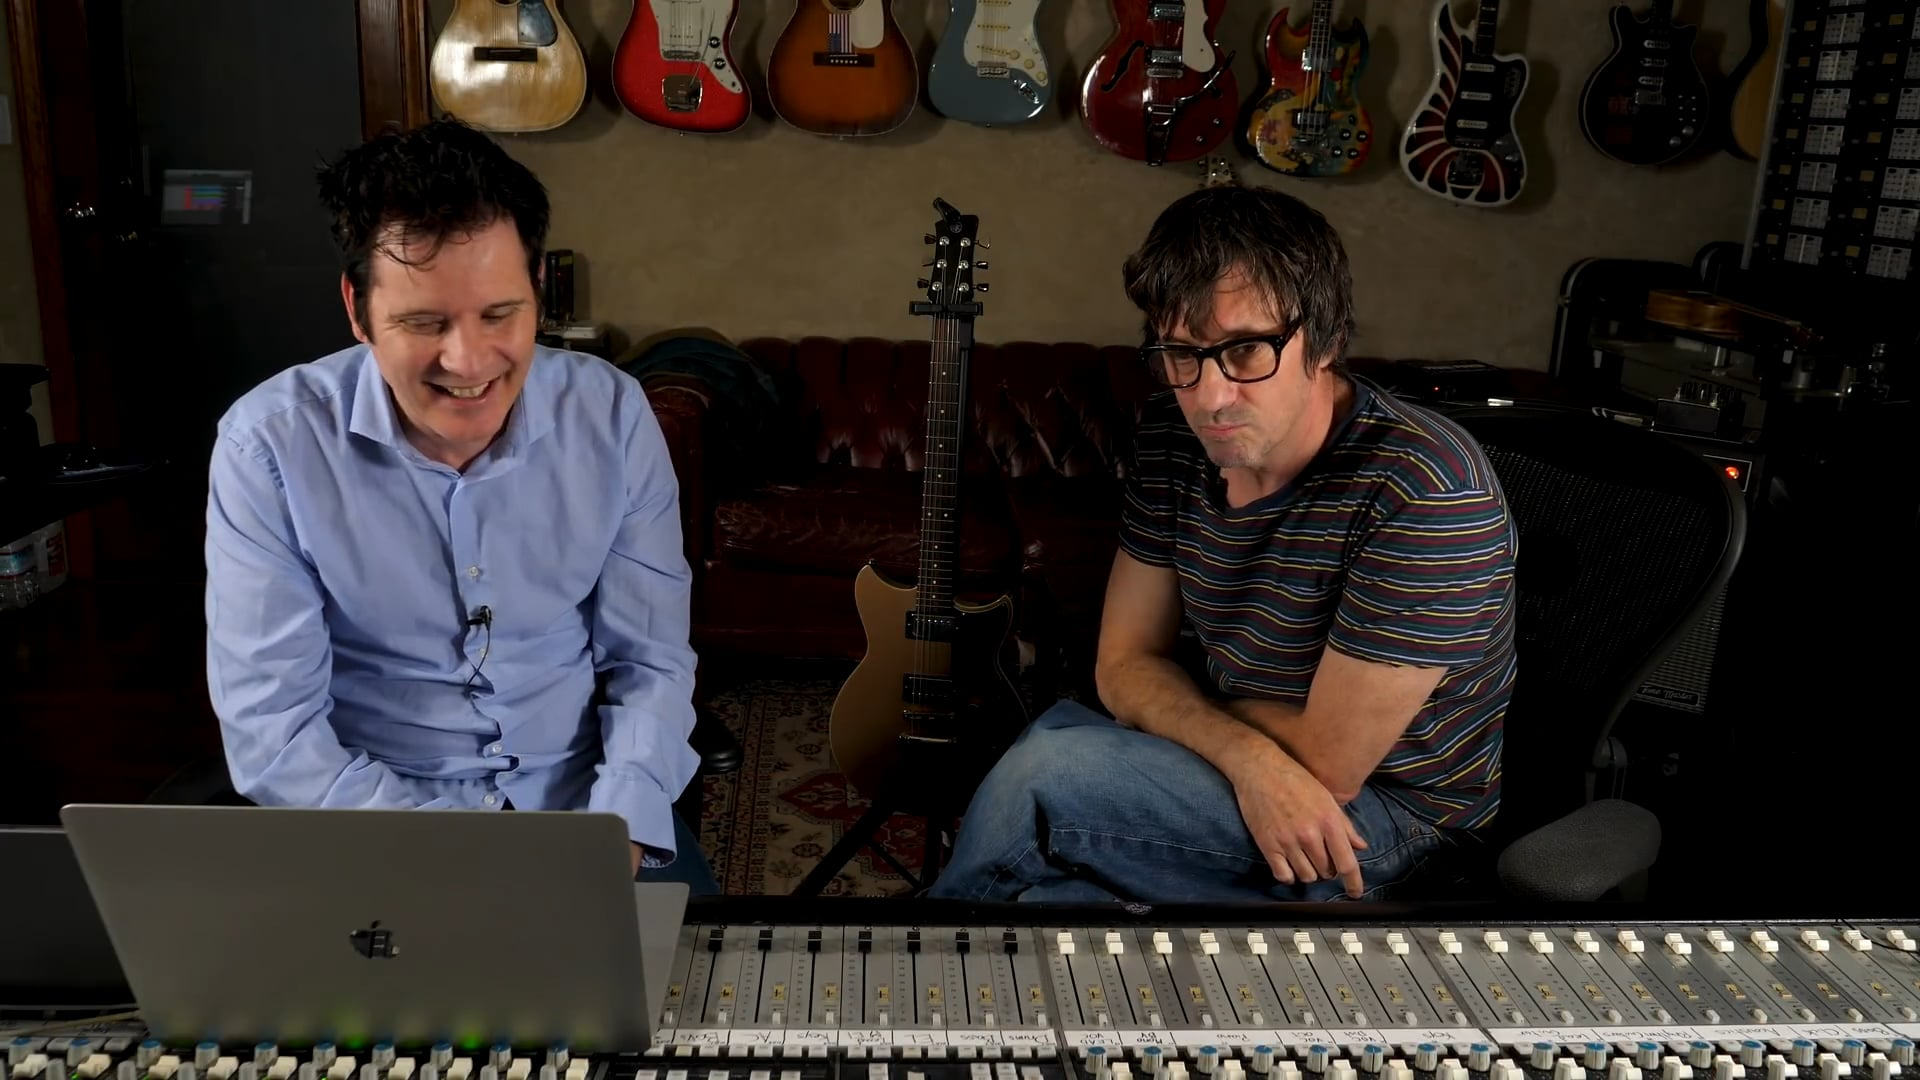 Inside The Song with Graham Coxon from Blur - Song 2